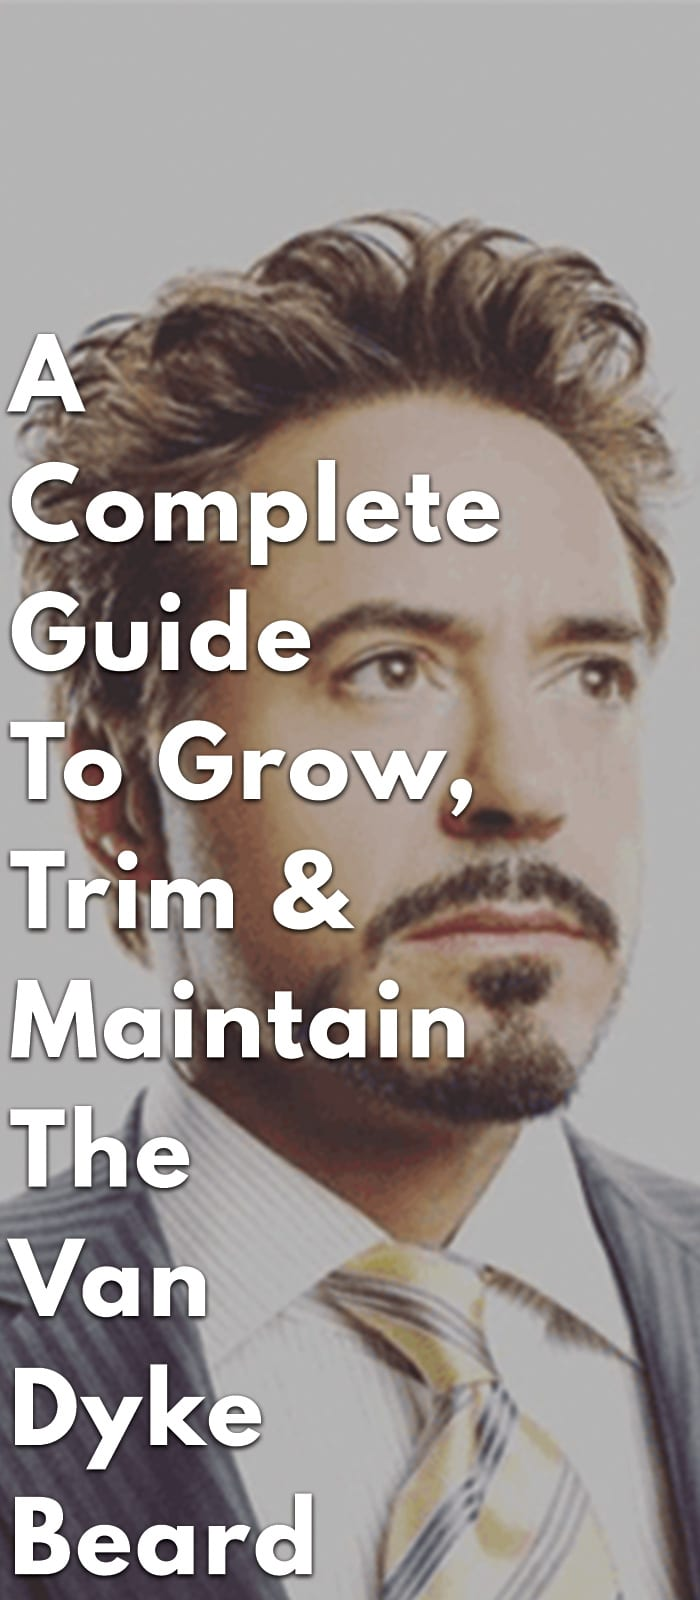 A-Complete-Guide-To-Grow,-Trim-&-Maintain-The-Van-Dyke-Beard